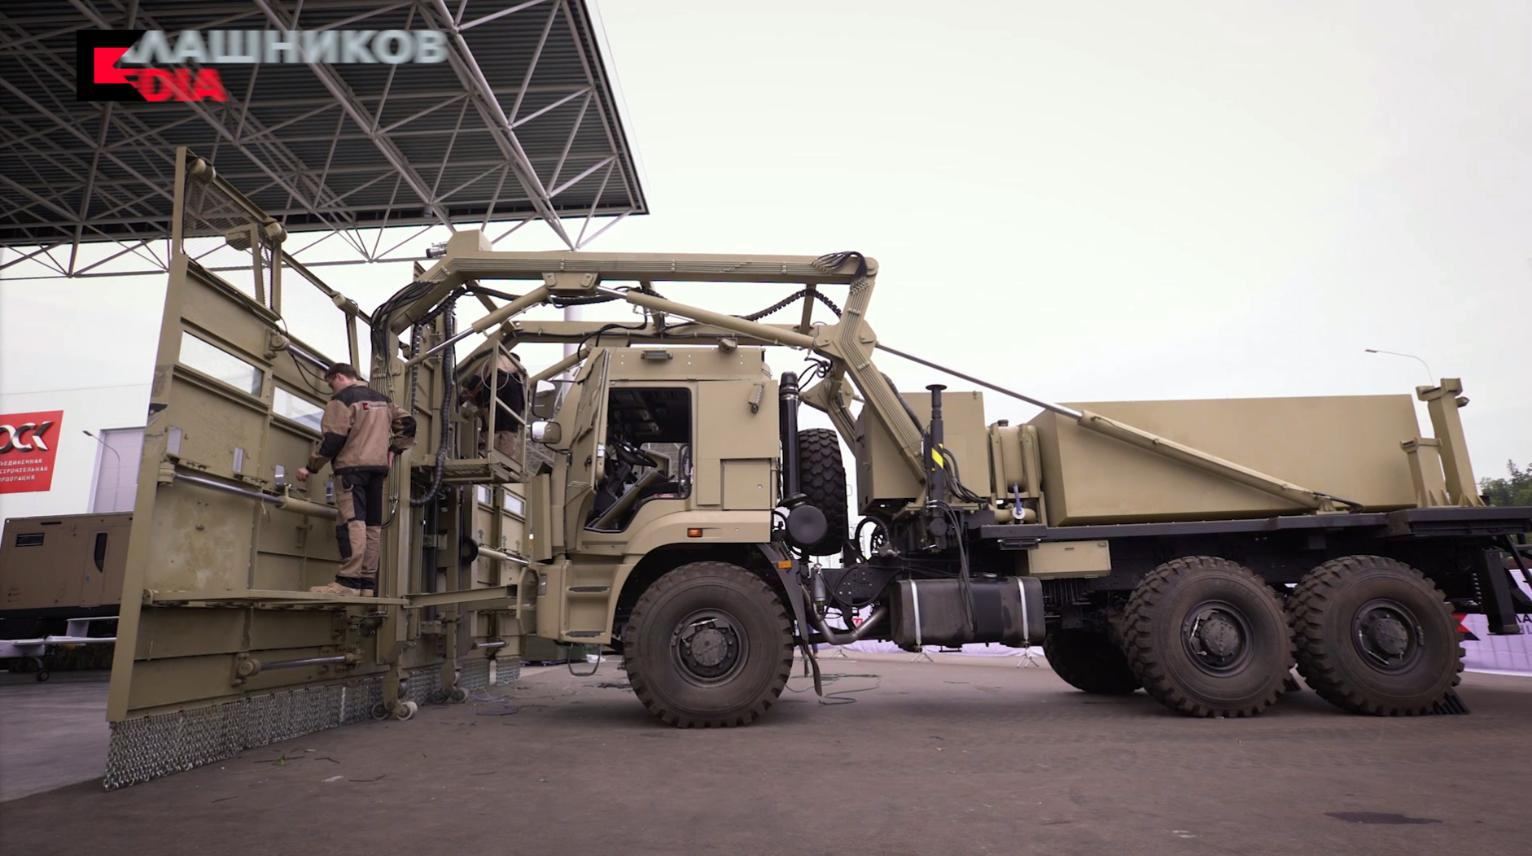 russian kalashnikov arms maker presents riot control vehicle